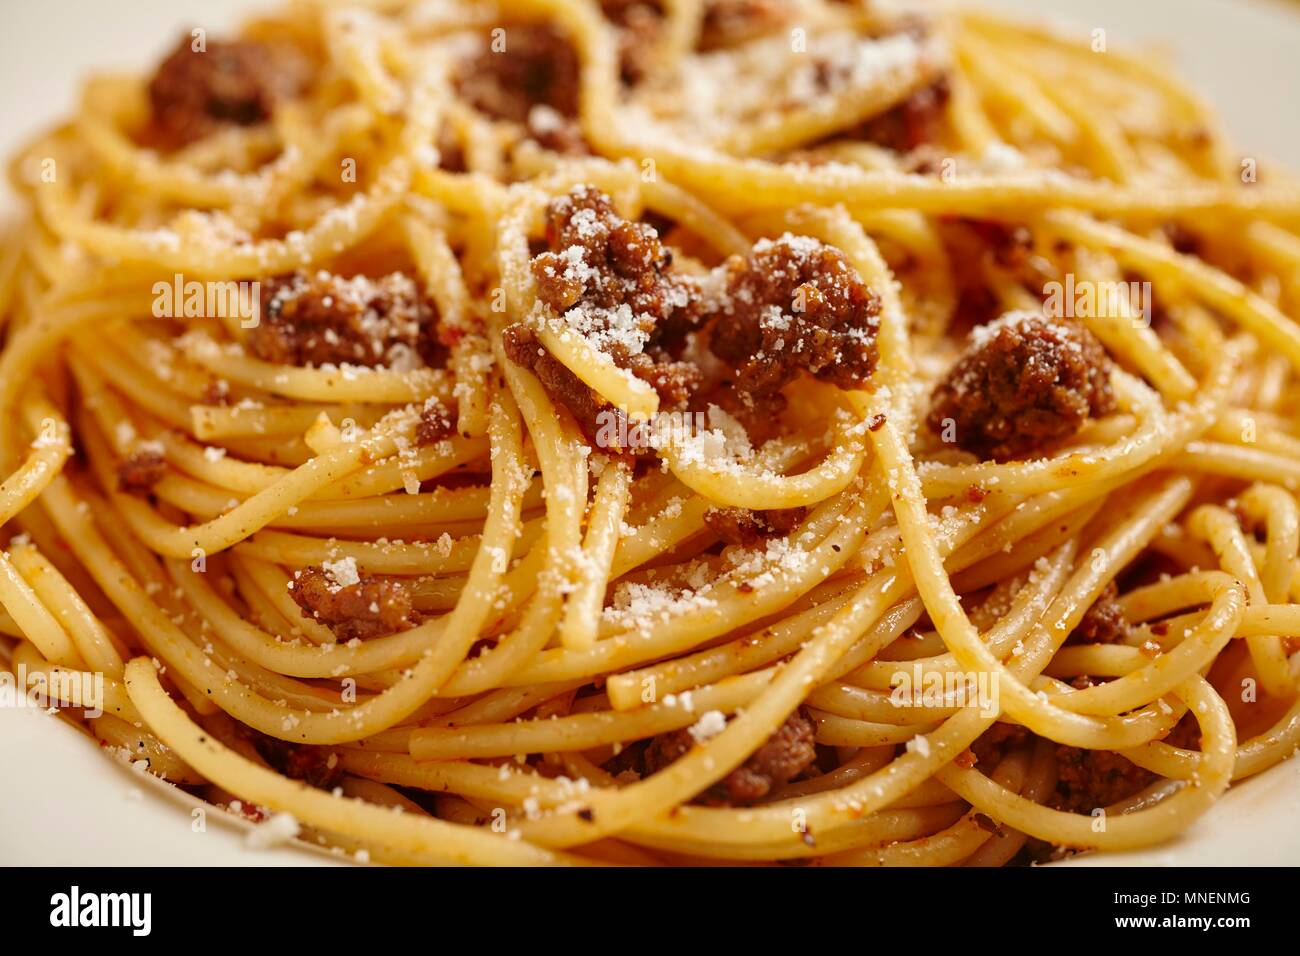 Spaghetti With A Minced Meat Sauce And Parmesan Close Up Stock Photo Alamy